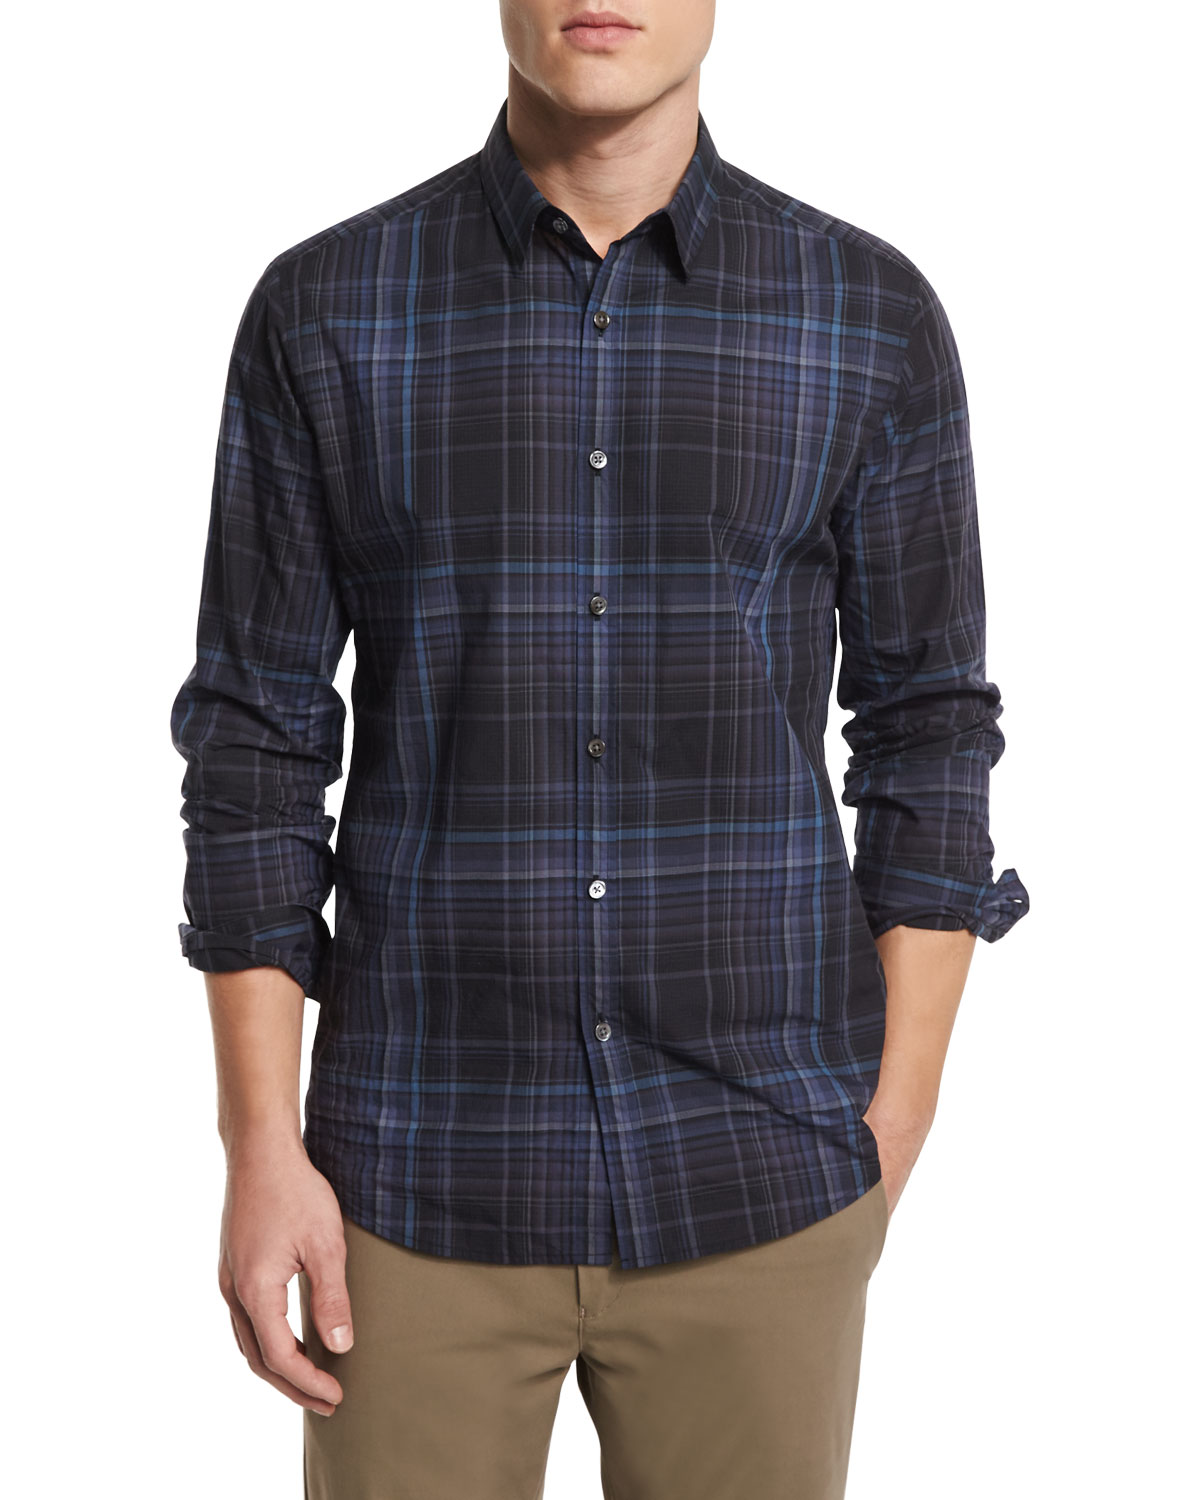 Zack PS Multi-Plaid Sport Shirt, Inkwell Multi